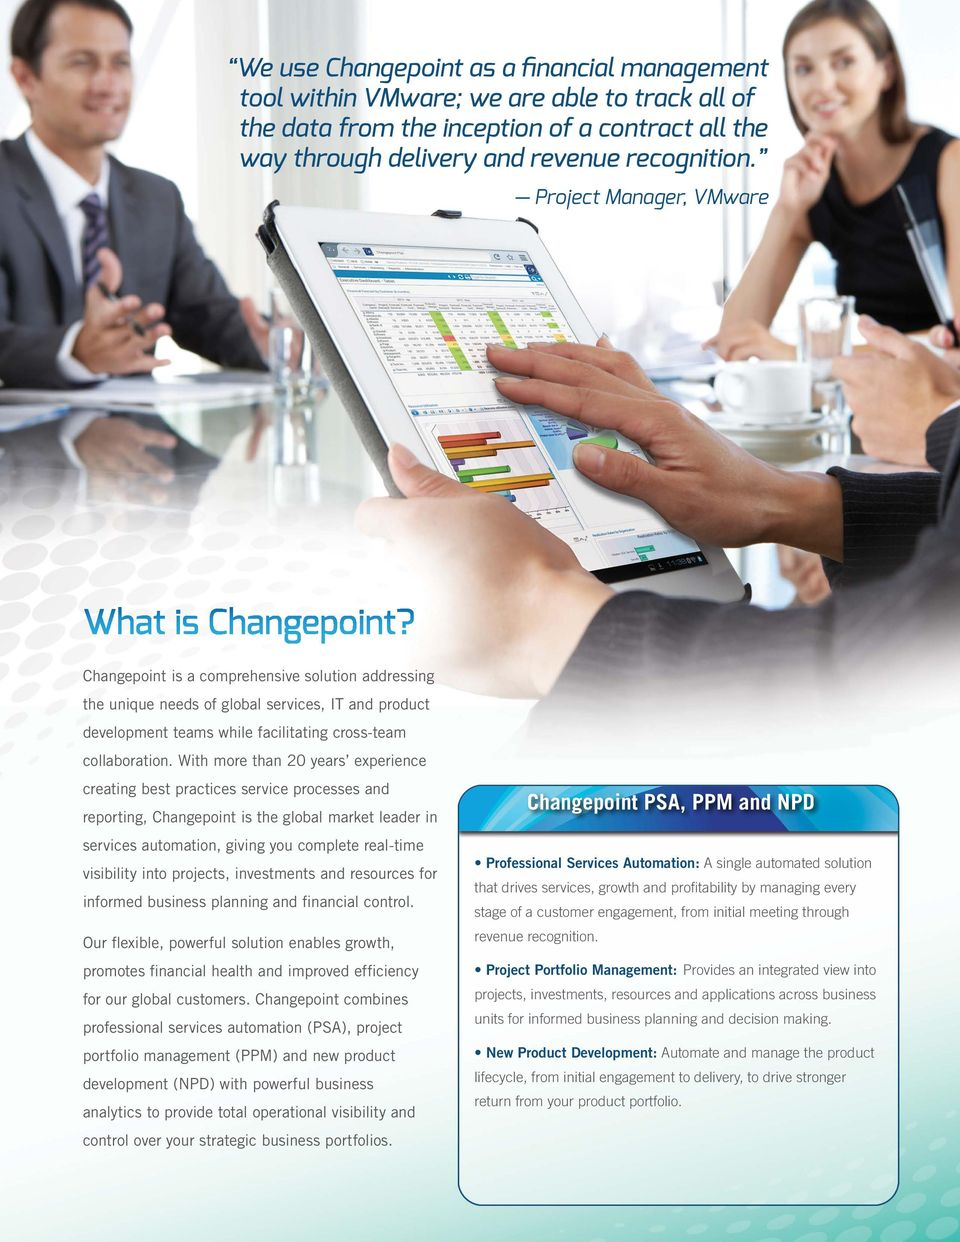 Changepoint is a comprehensive solution addressing the unique needs of global services, IT and product development teams while facilitating cross-team collaboration.